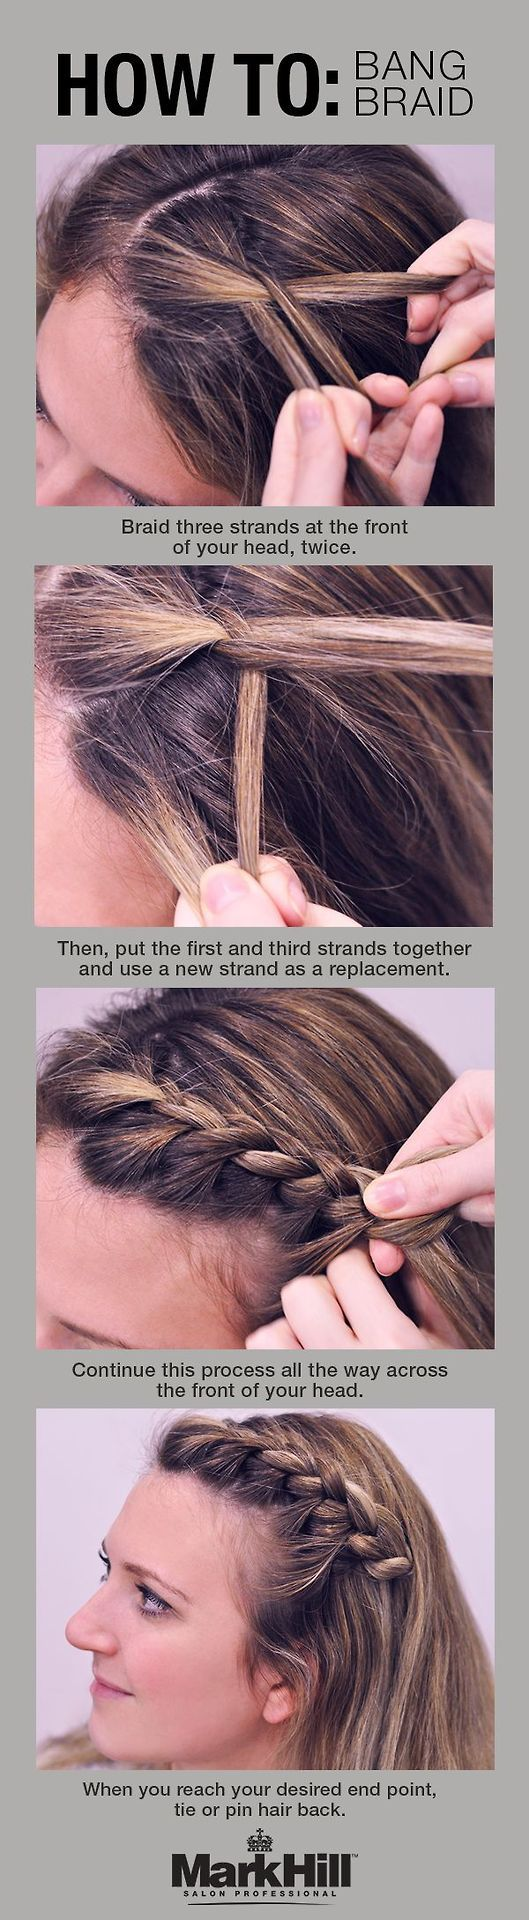 How to bang braid very simple step by step instructions and easy to